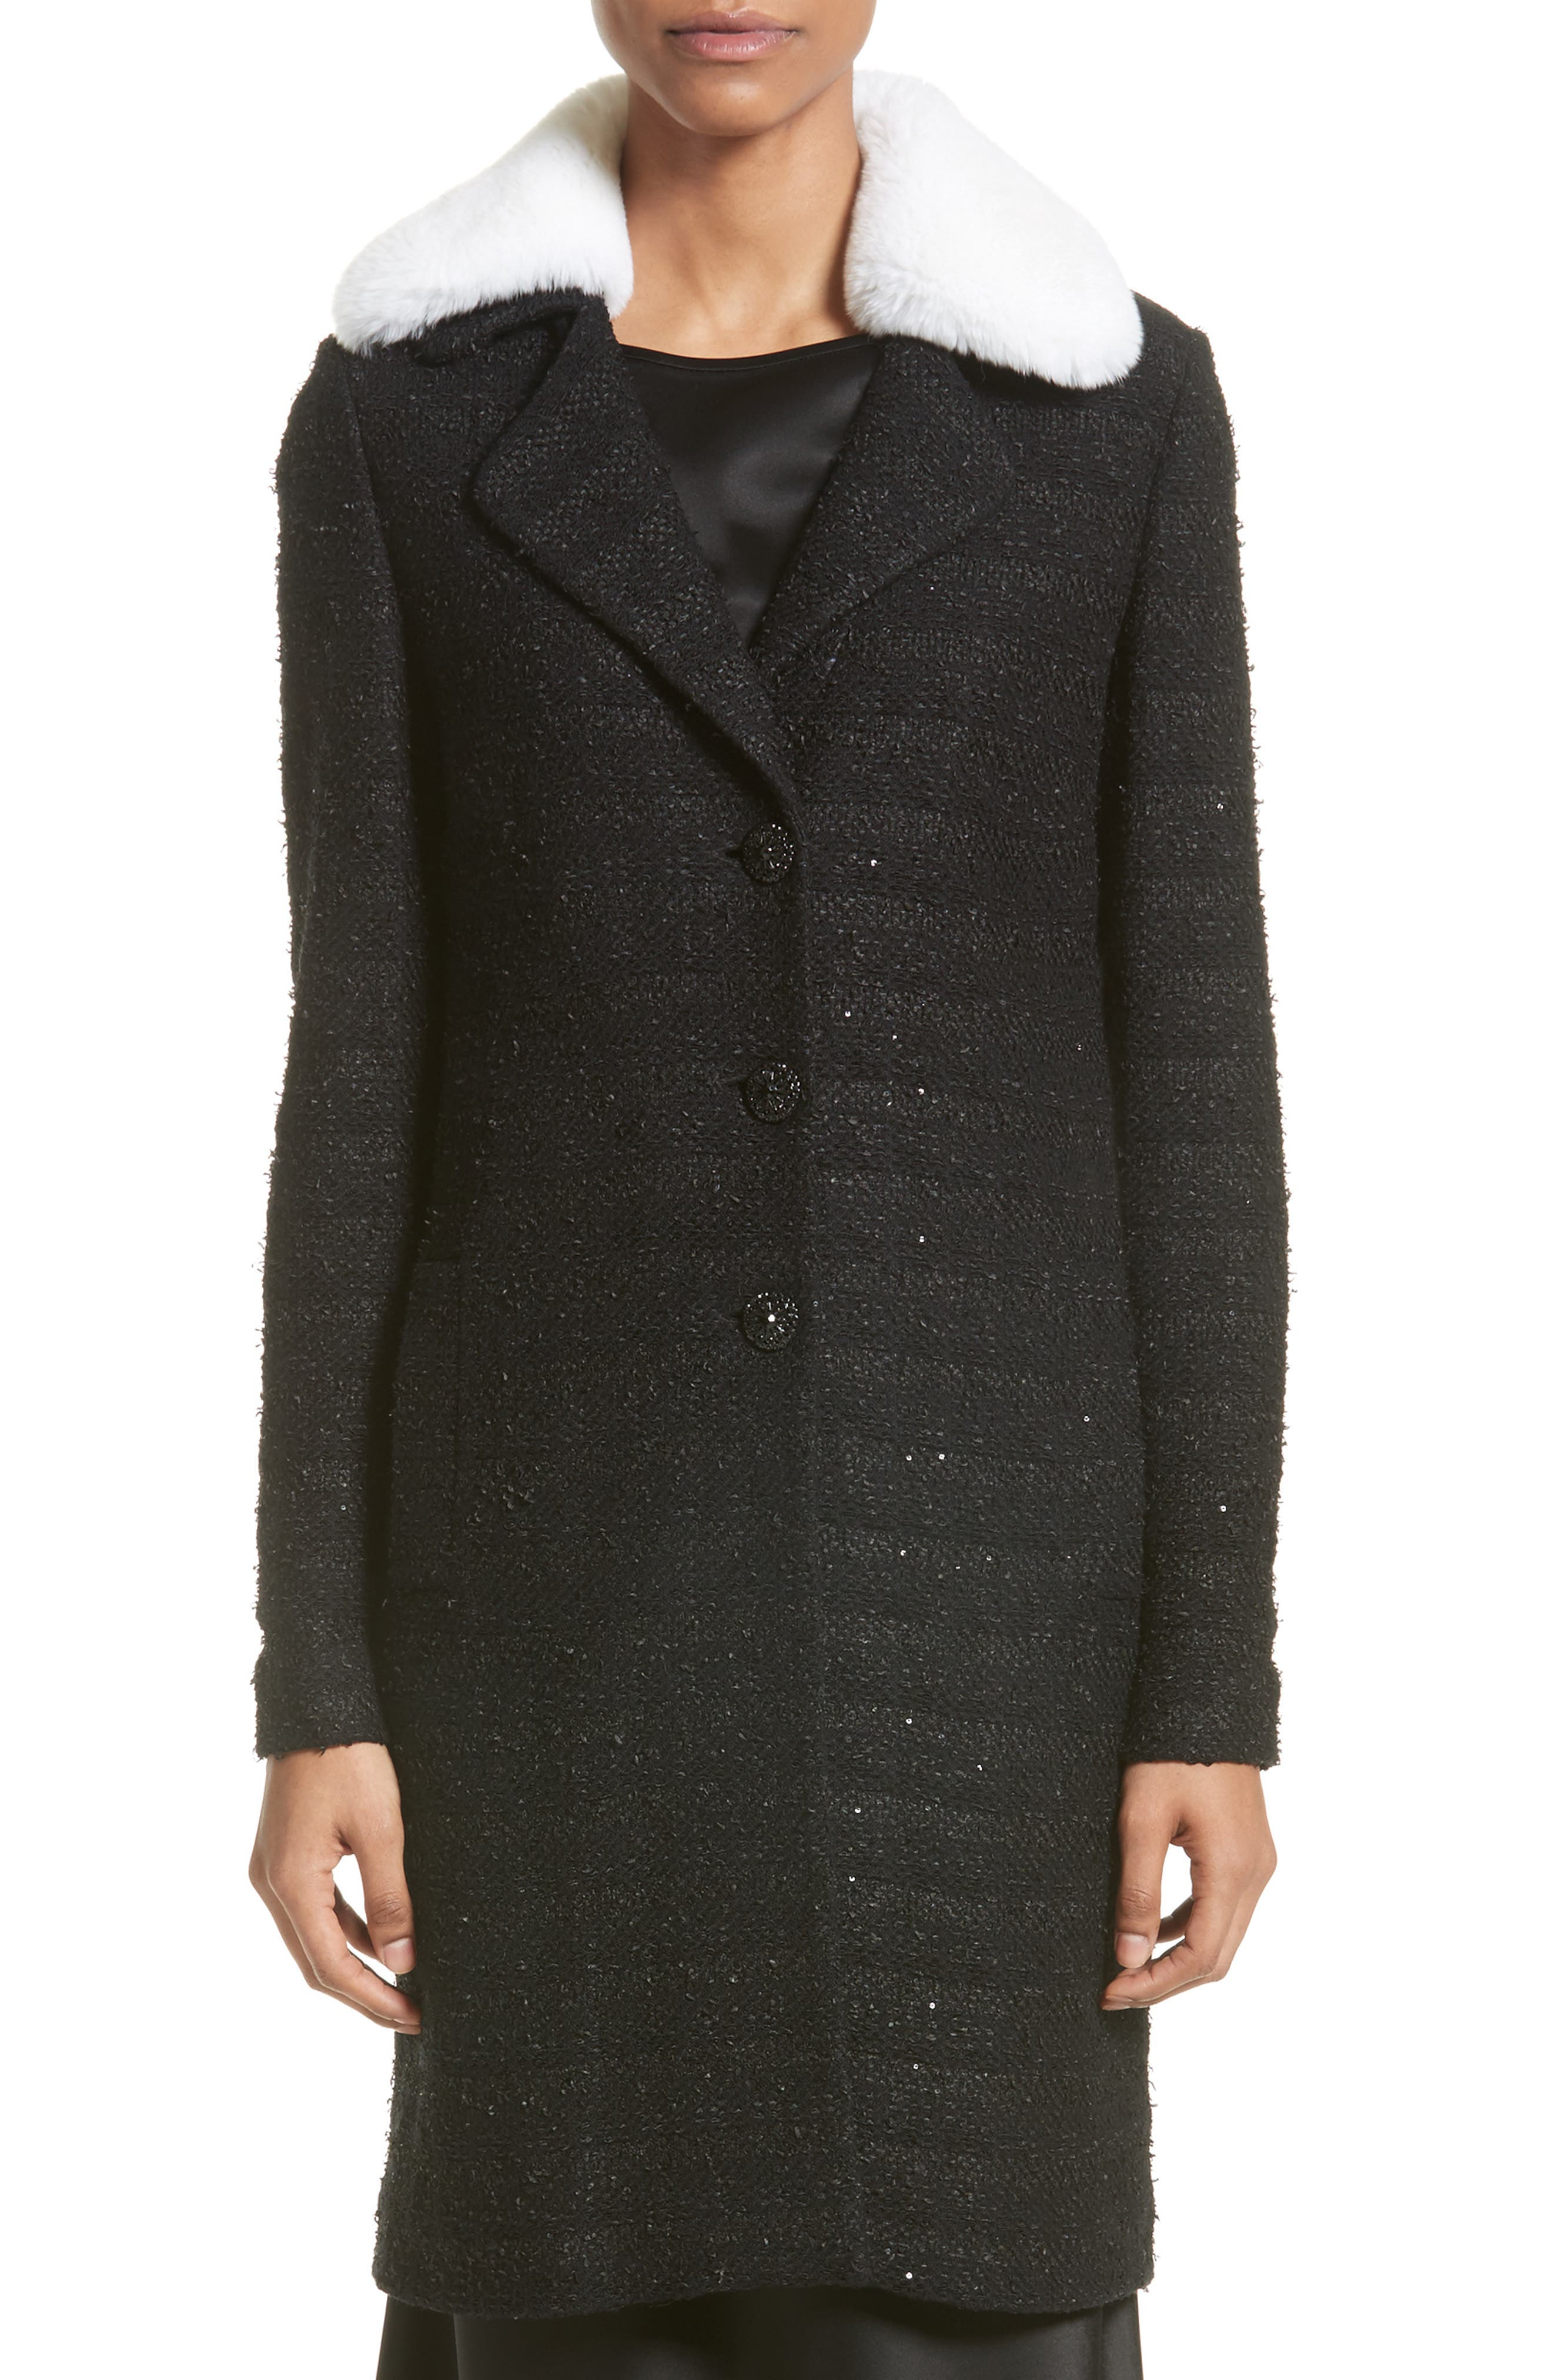 Main Image - St. John Collection Sequin Knit Topper with Detachable Genuine Rabbit Fur Collar